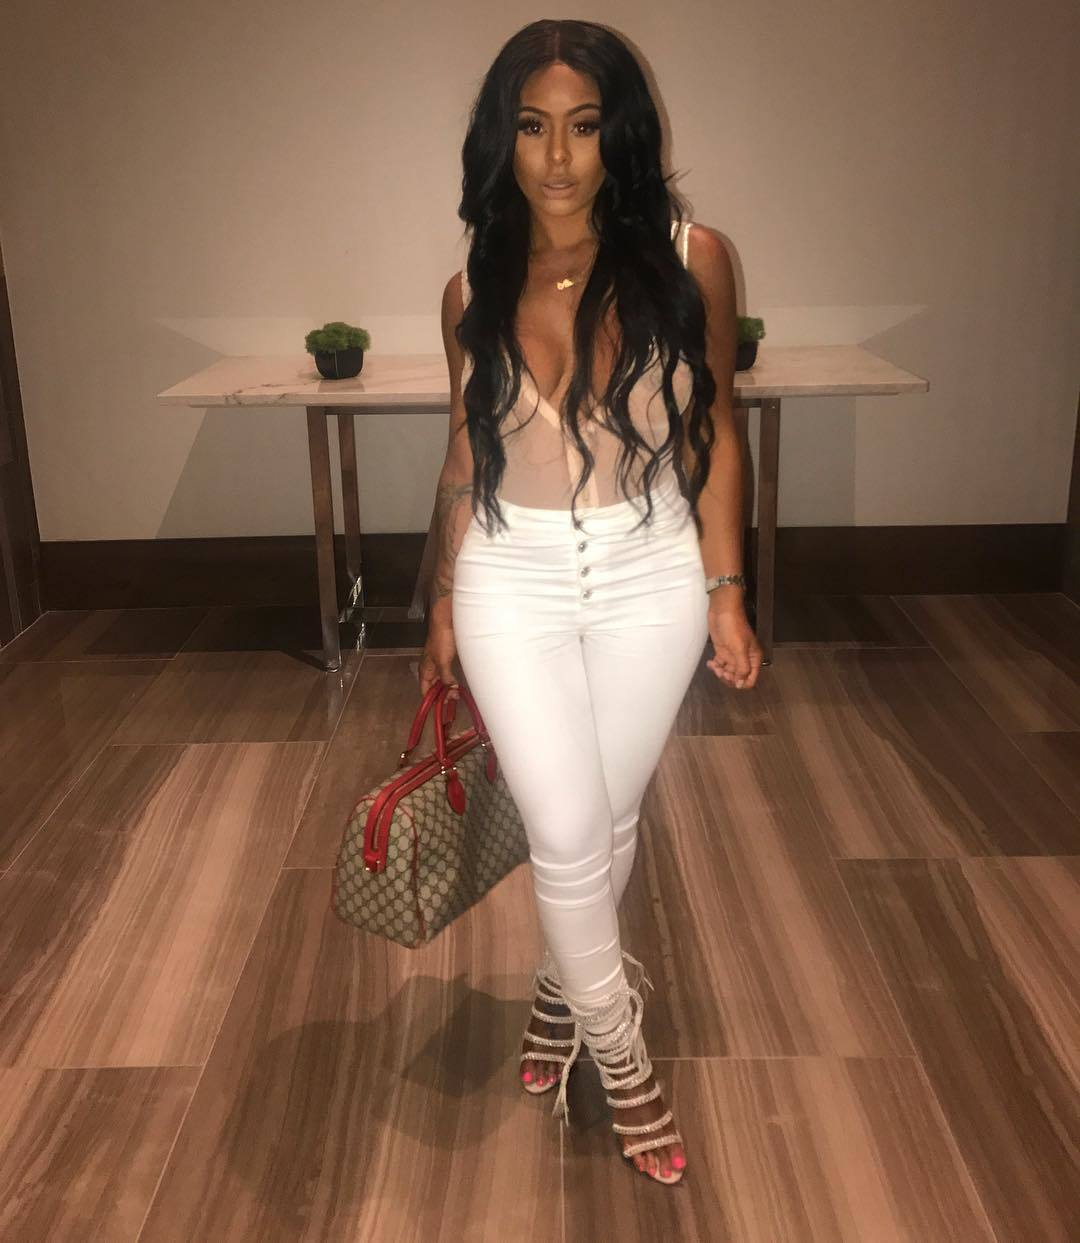 Alexis-Skyy sexy images